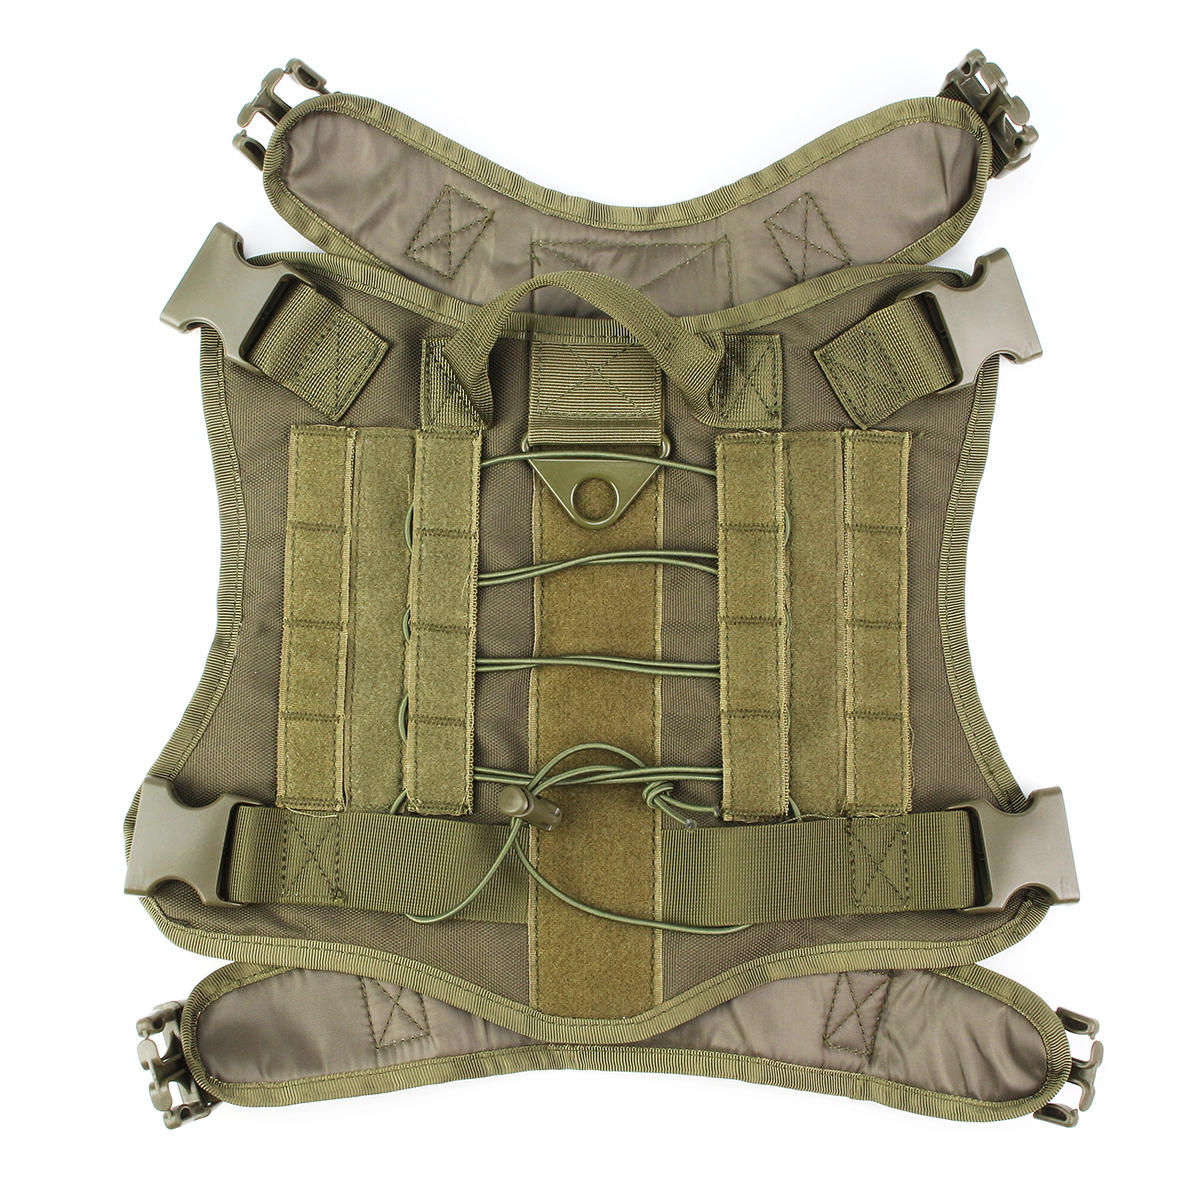 L Size 1000D Pet Trainer Nylon Outdoor Military Tactical Dog Training Molle Compact Vest Harness MOLLE System Clothes - 4